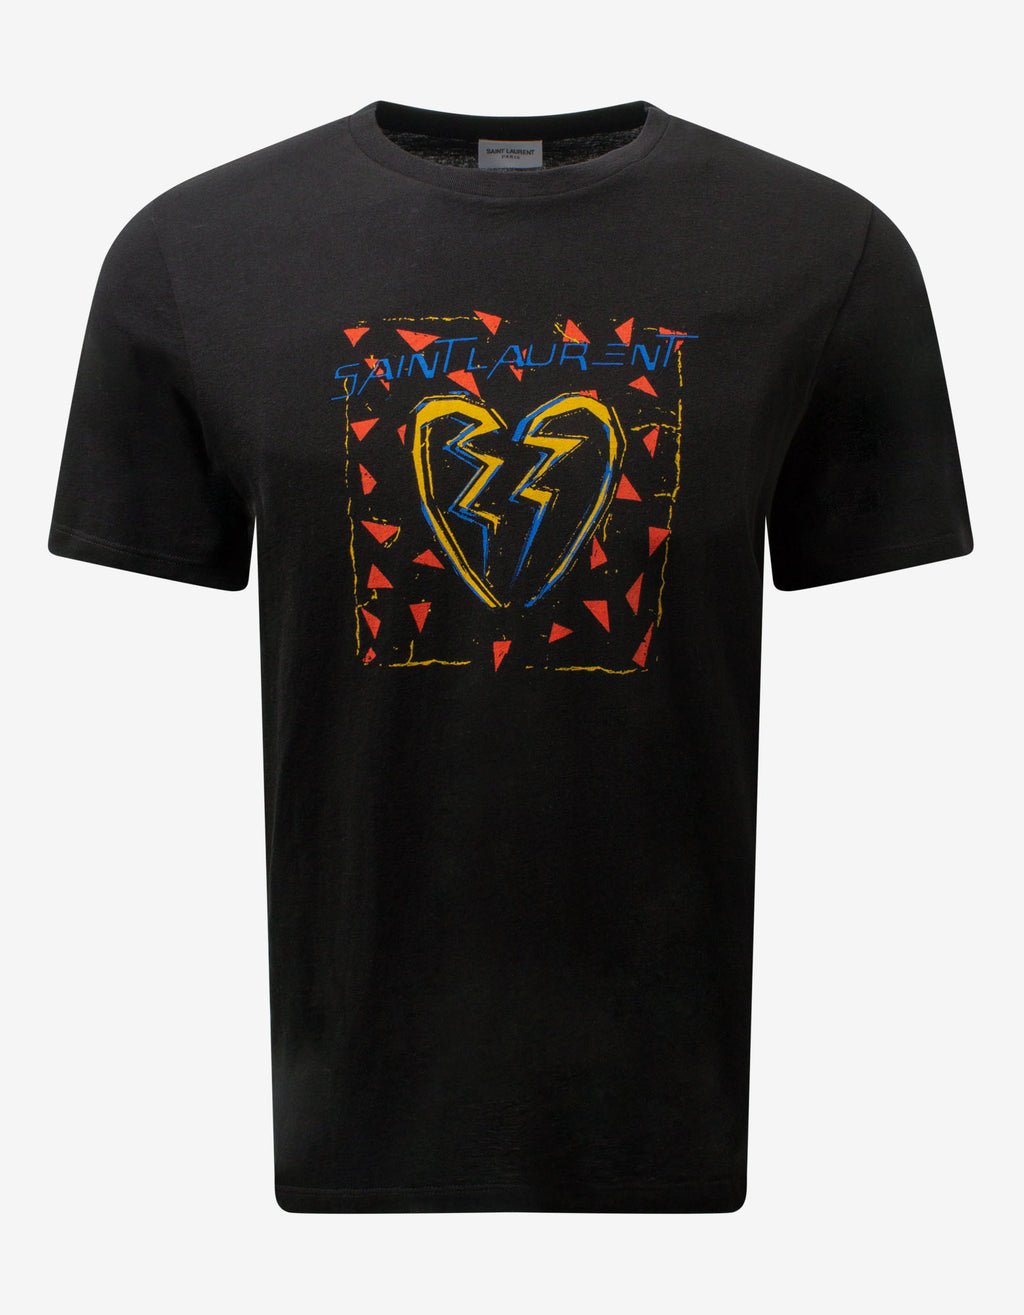 Black Broken Heart Print T-Shirt